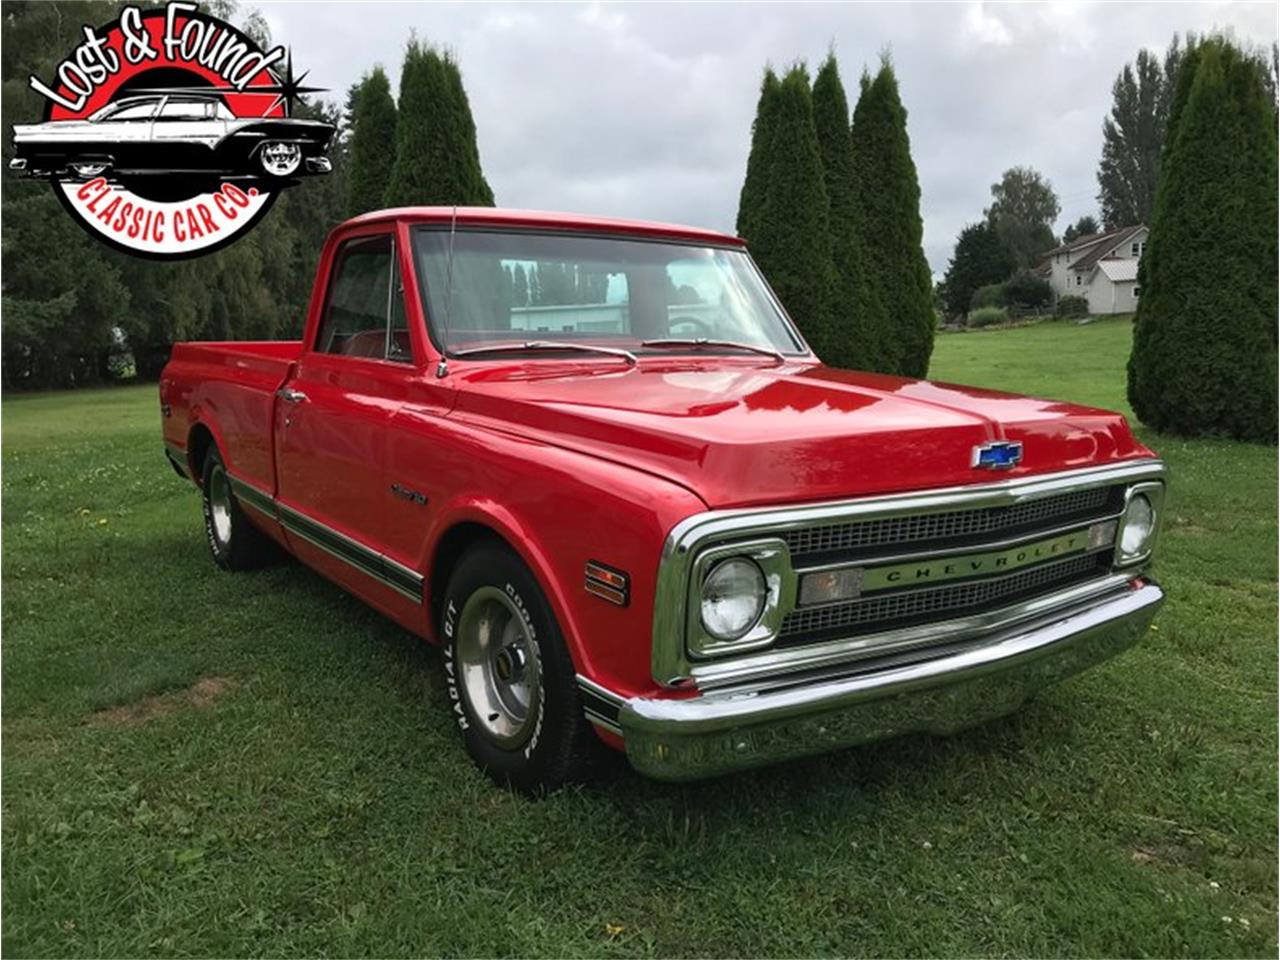 Large Picture of 1969 Chevrolet C/K 10 located in Washington - $39,500.00 - QYOO